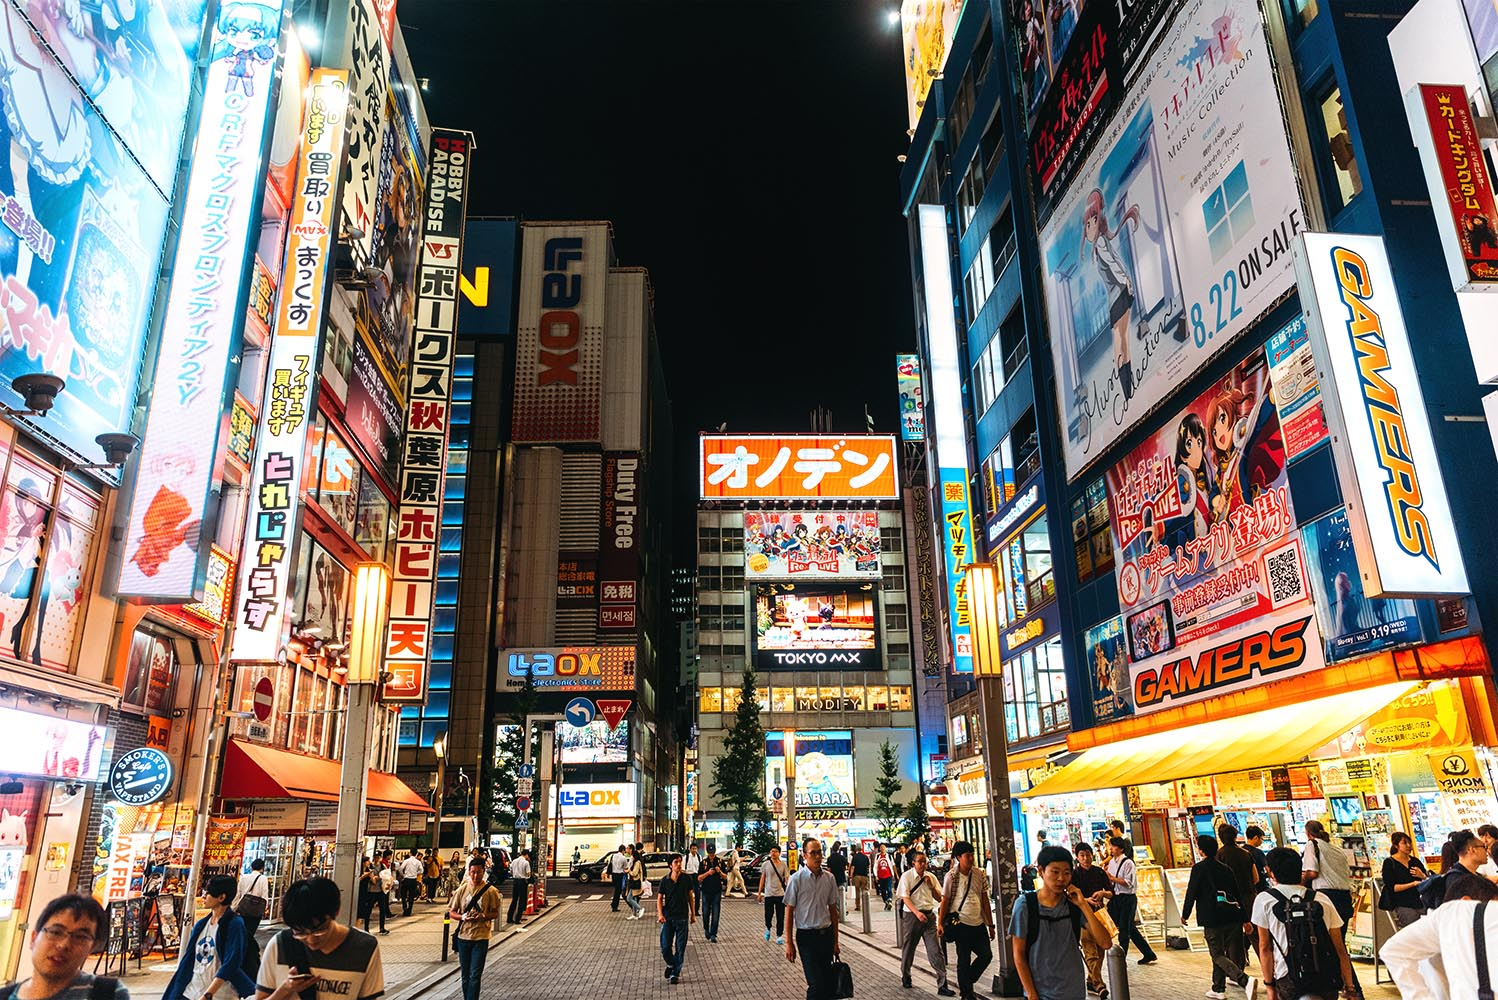 Neon signs cover buildings in the consumer electronics district